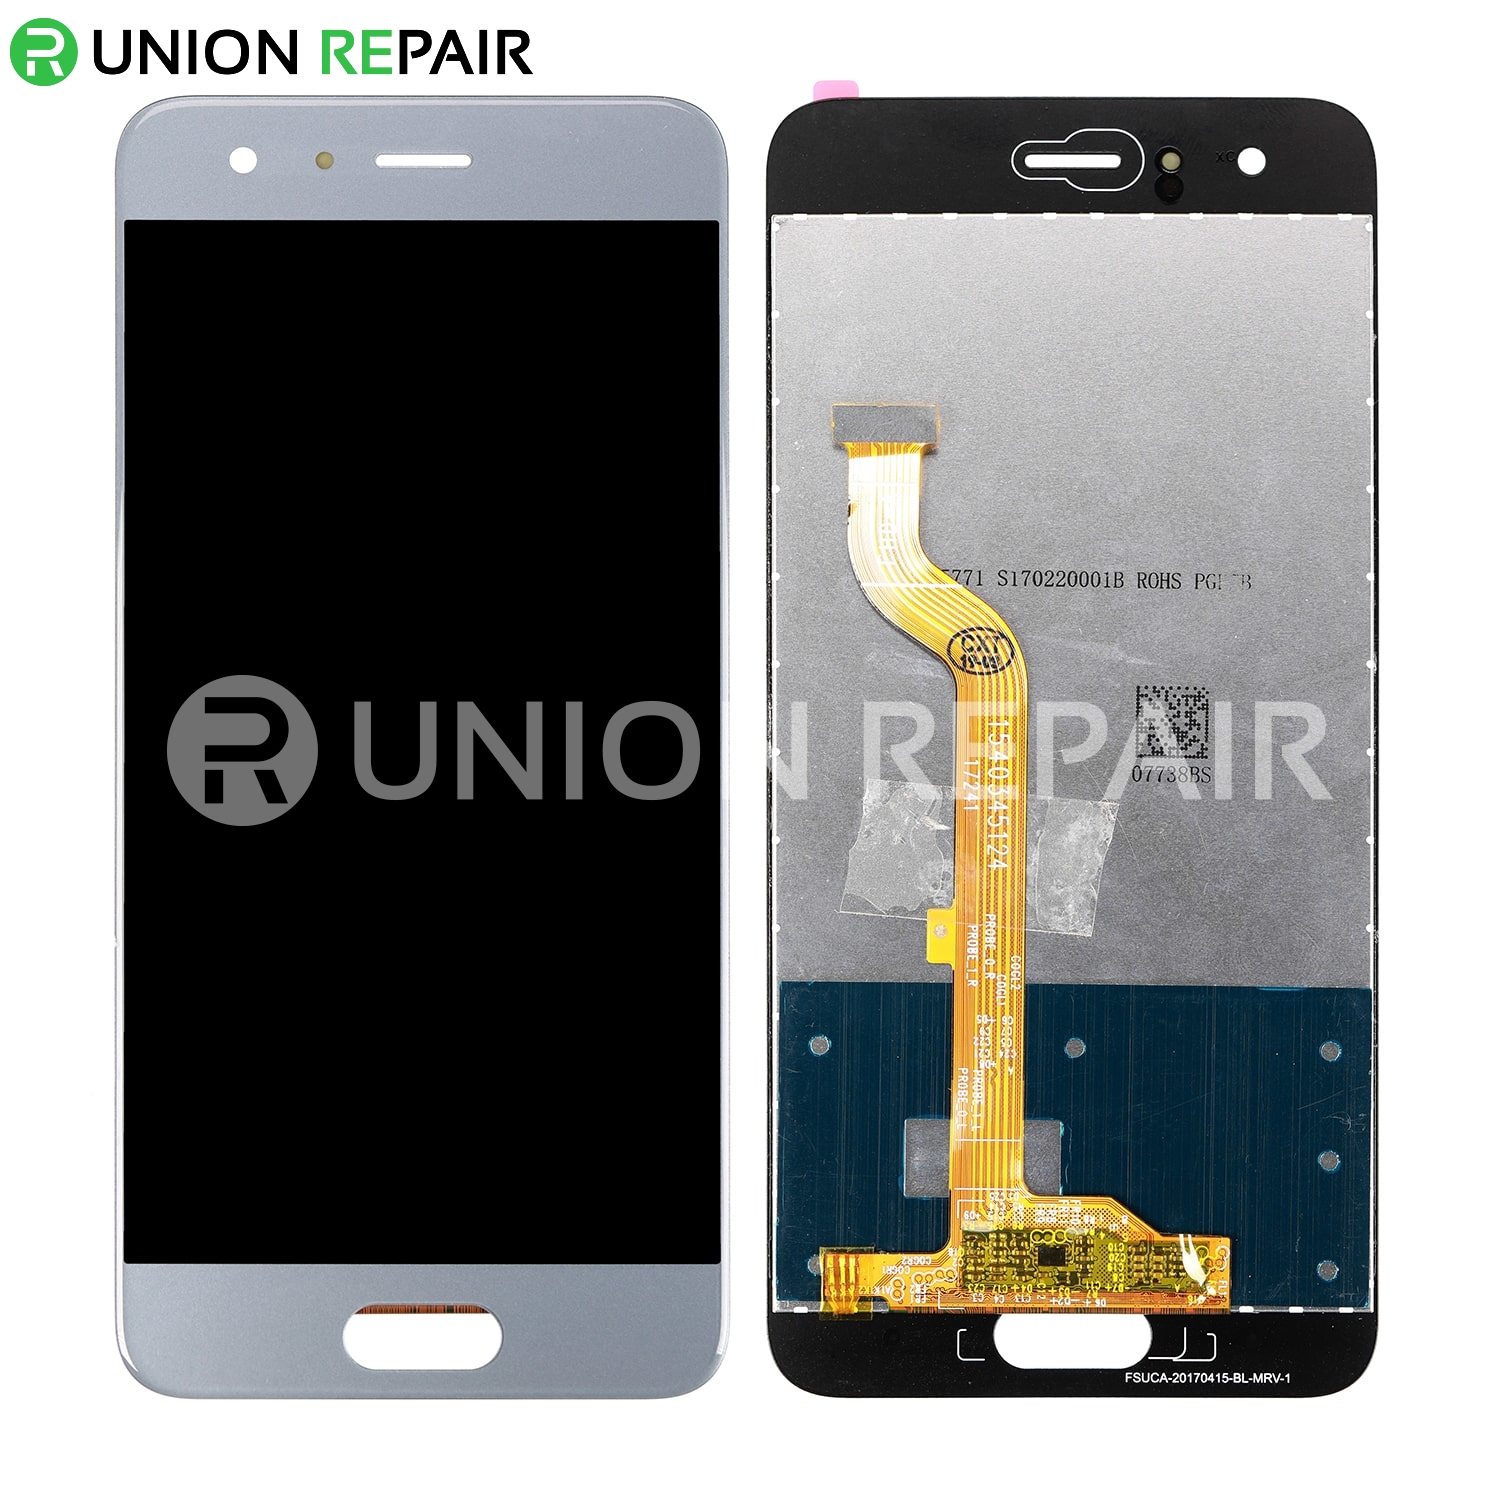 Replacement For Huawei Honor 9 LCD with Digitizer Assembly - Glacier Grey